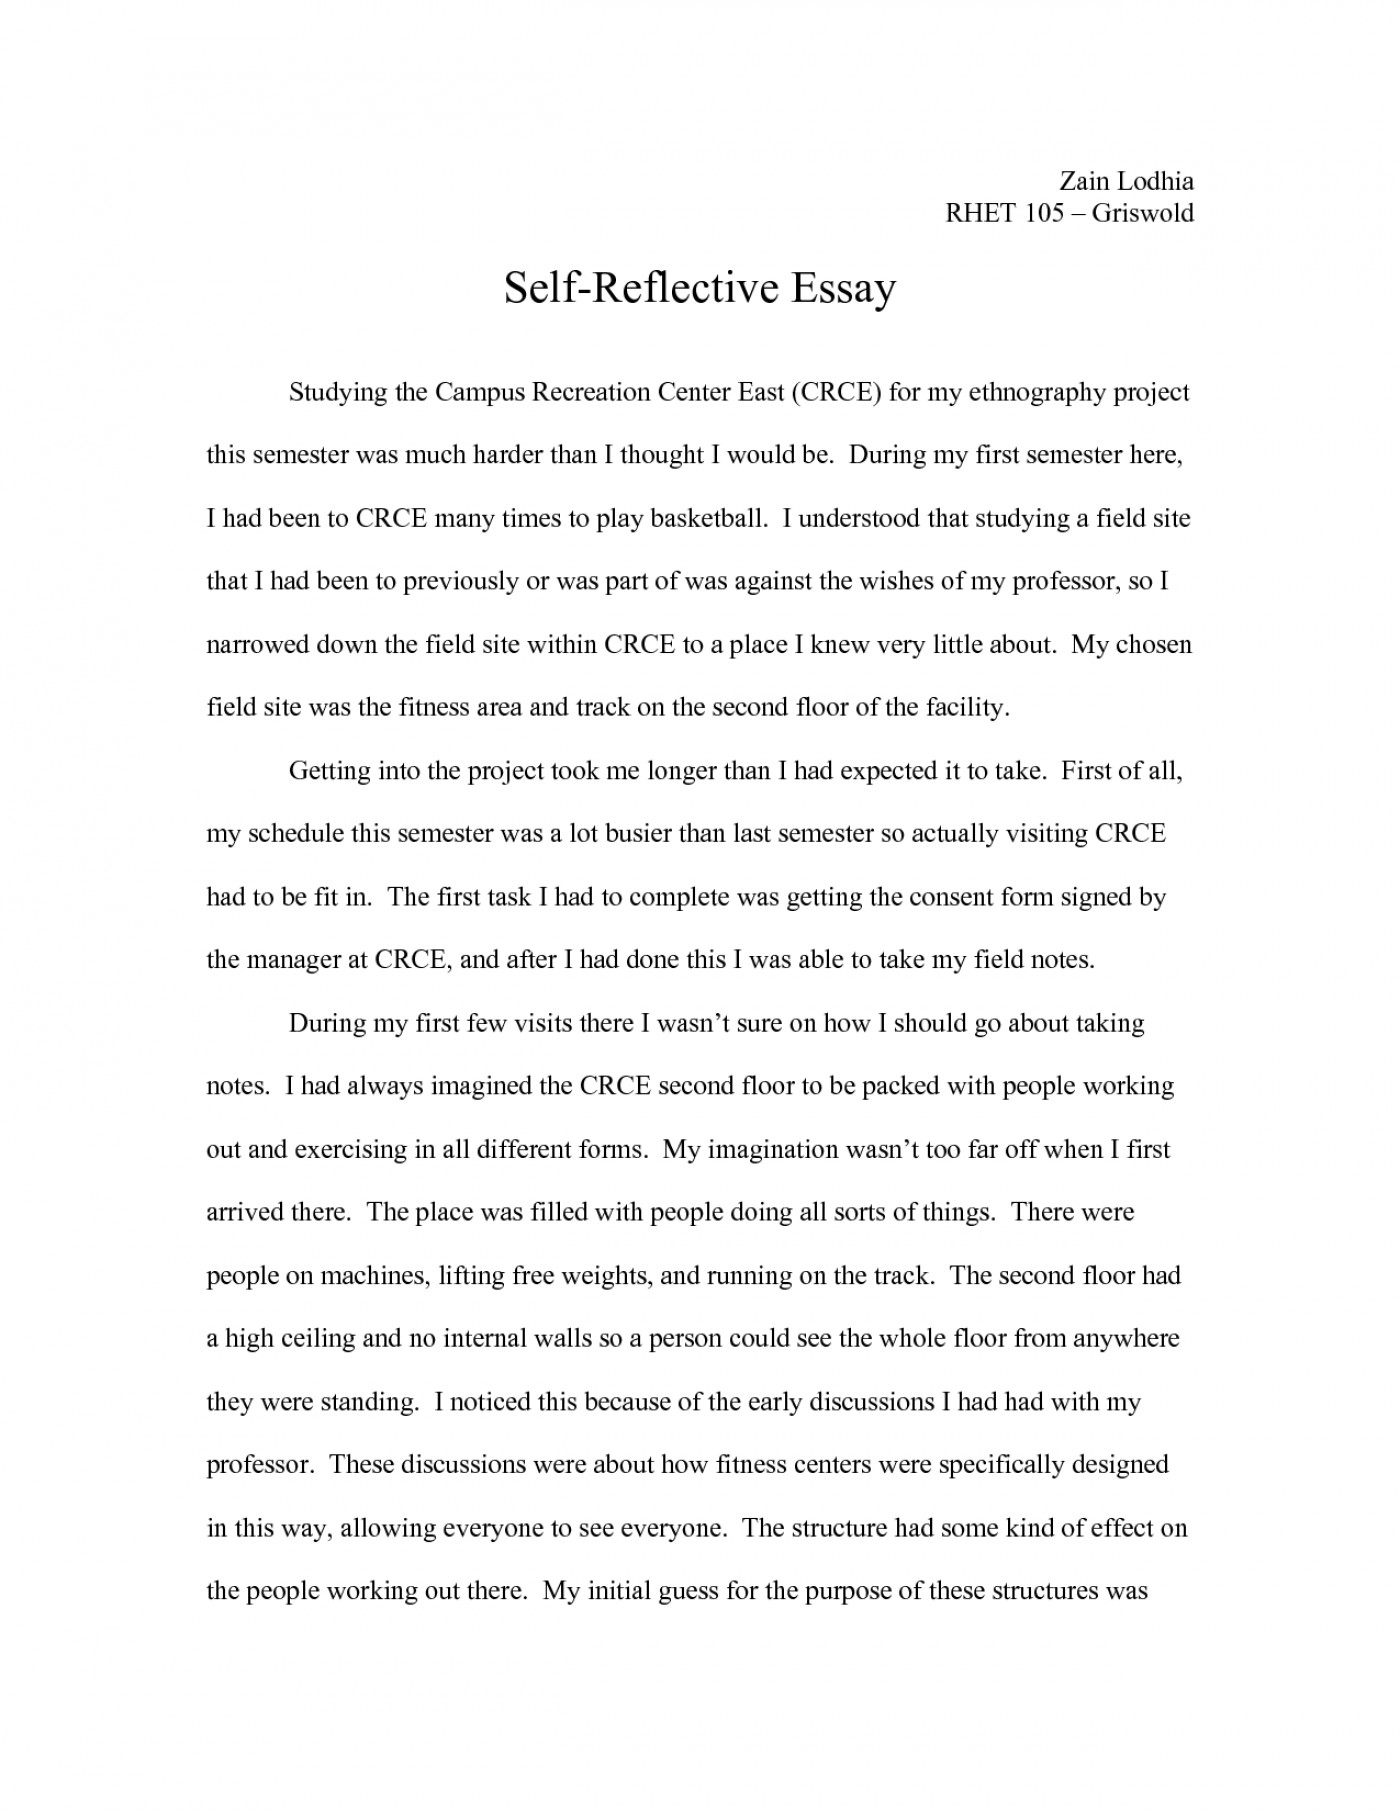 003 Qal0pwnf46 Reflective Essays Beautiful Essay Examples Writing Pdf College Sample 1400